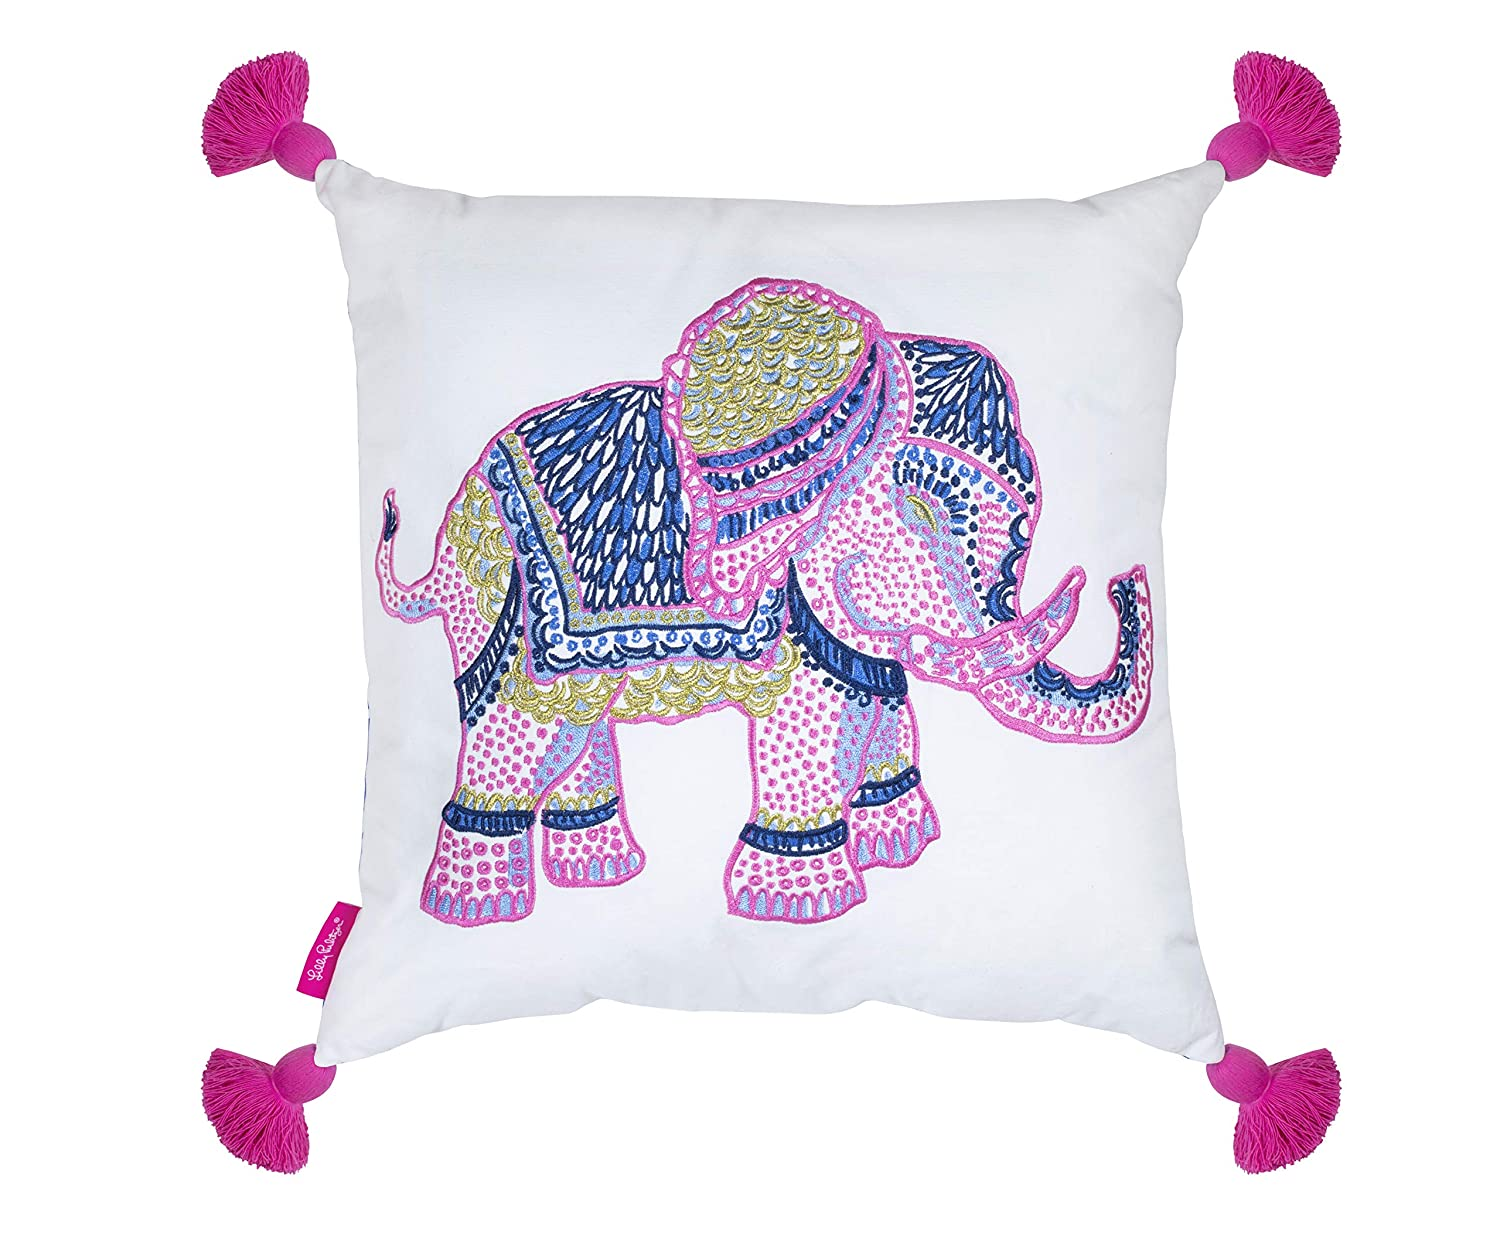 aad031438fd499 Amazon.com: Lilly Pulitzer Indoor/Outdoor Large Decorative Pillow,  Elephant: Home & Kitchen